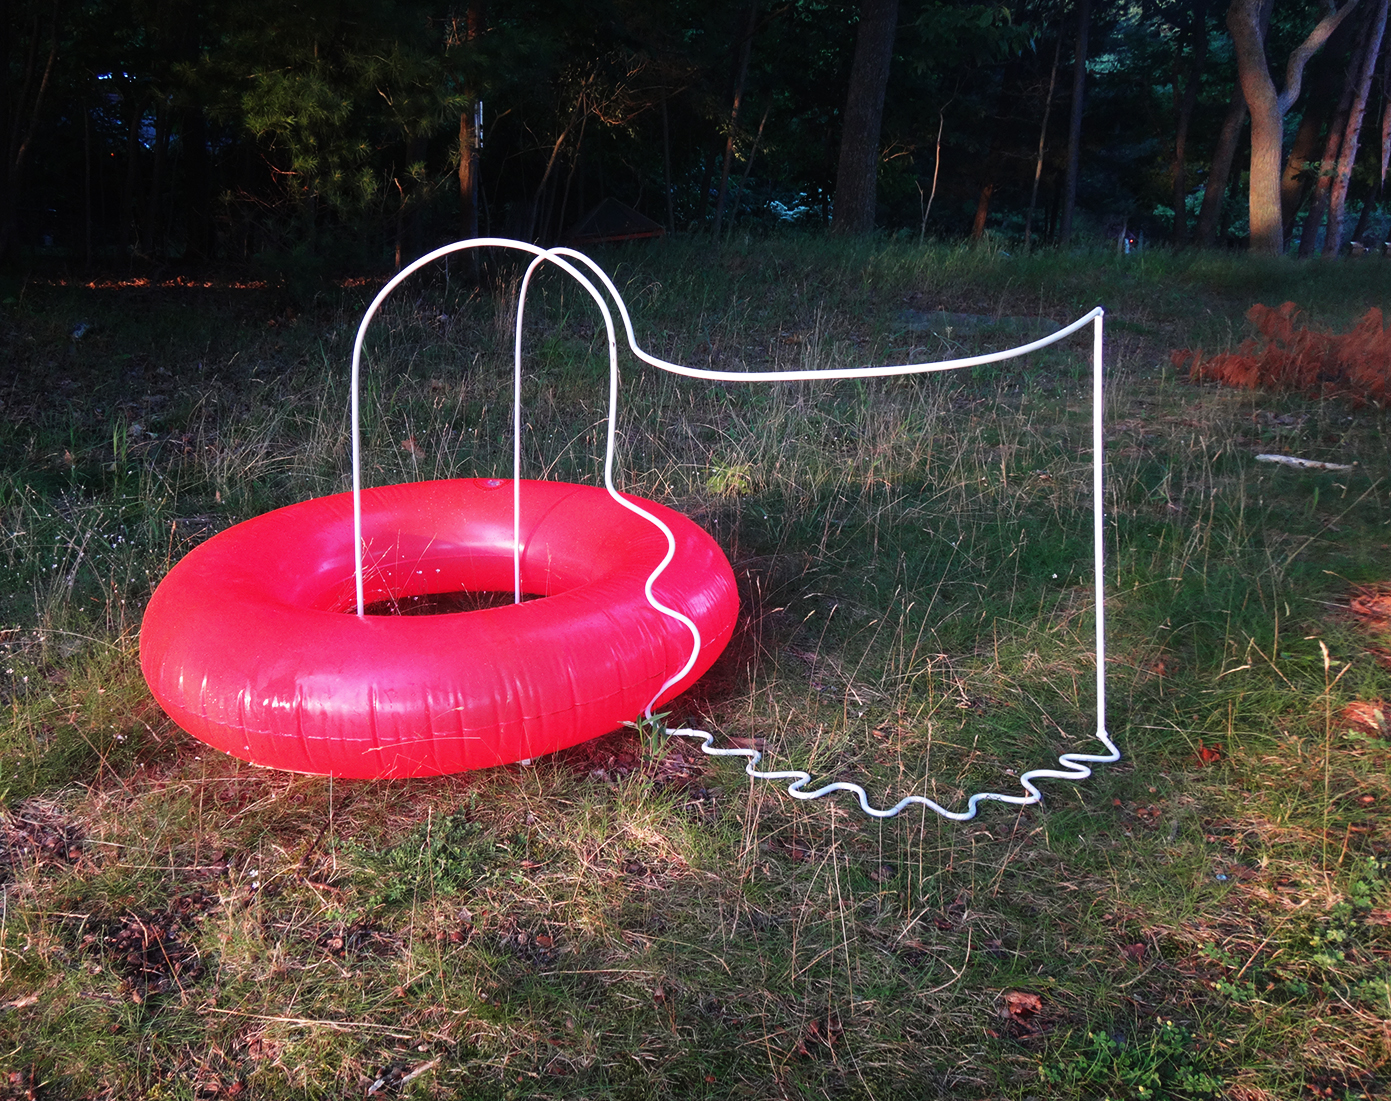 Made at Ox-Bow School of Art and Artists' Residency; recipient of Portfolio Merit Scholarship, 2019, steel, spray paint, and pool float